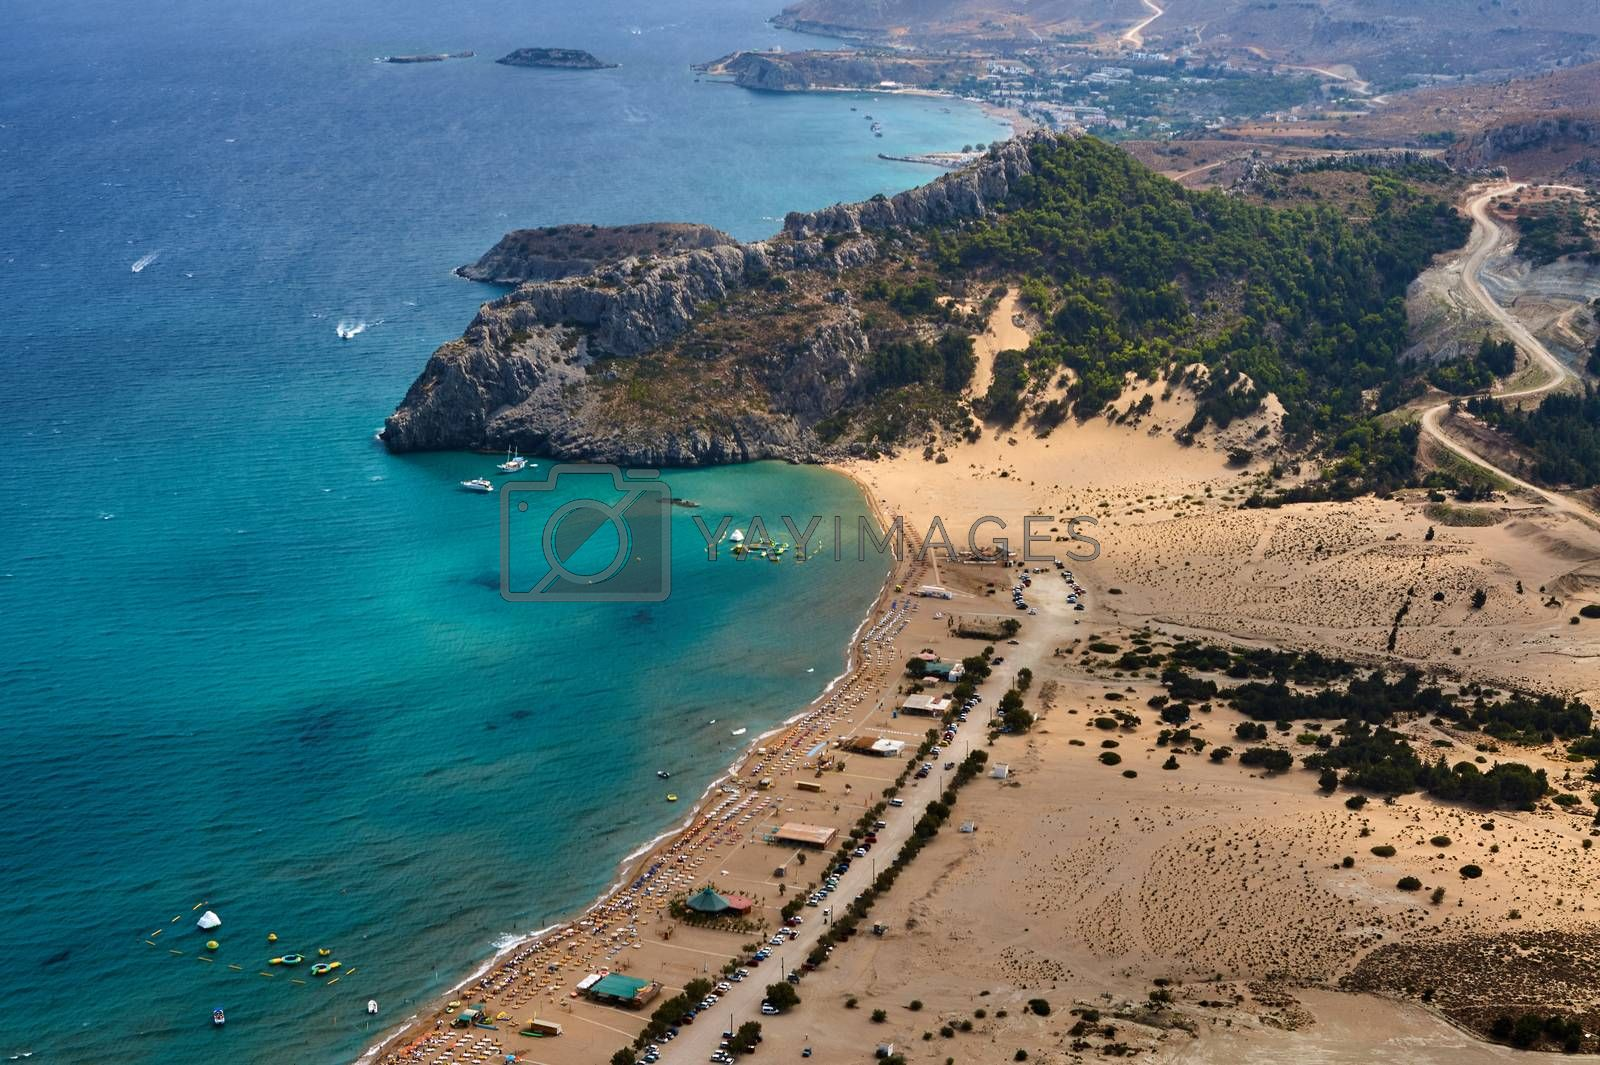 People on the beach on the Mediterranean Sea on the island of Rhodes